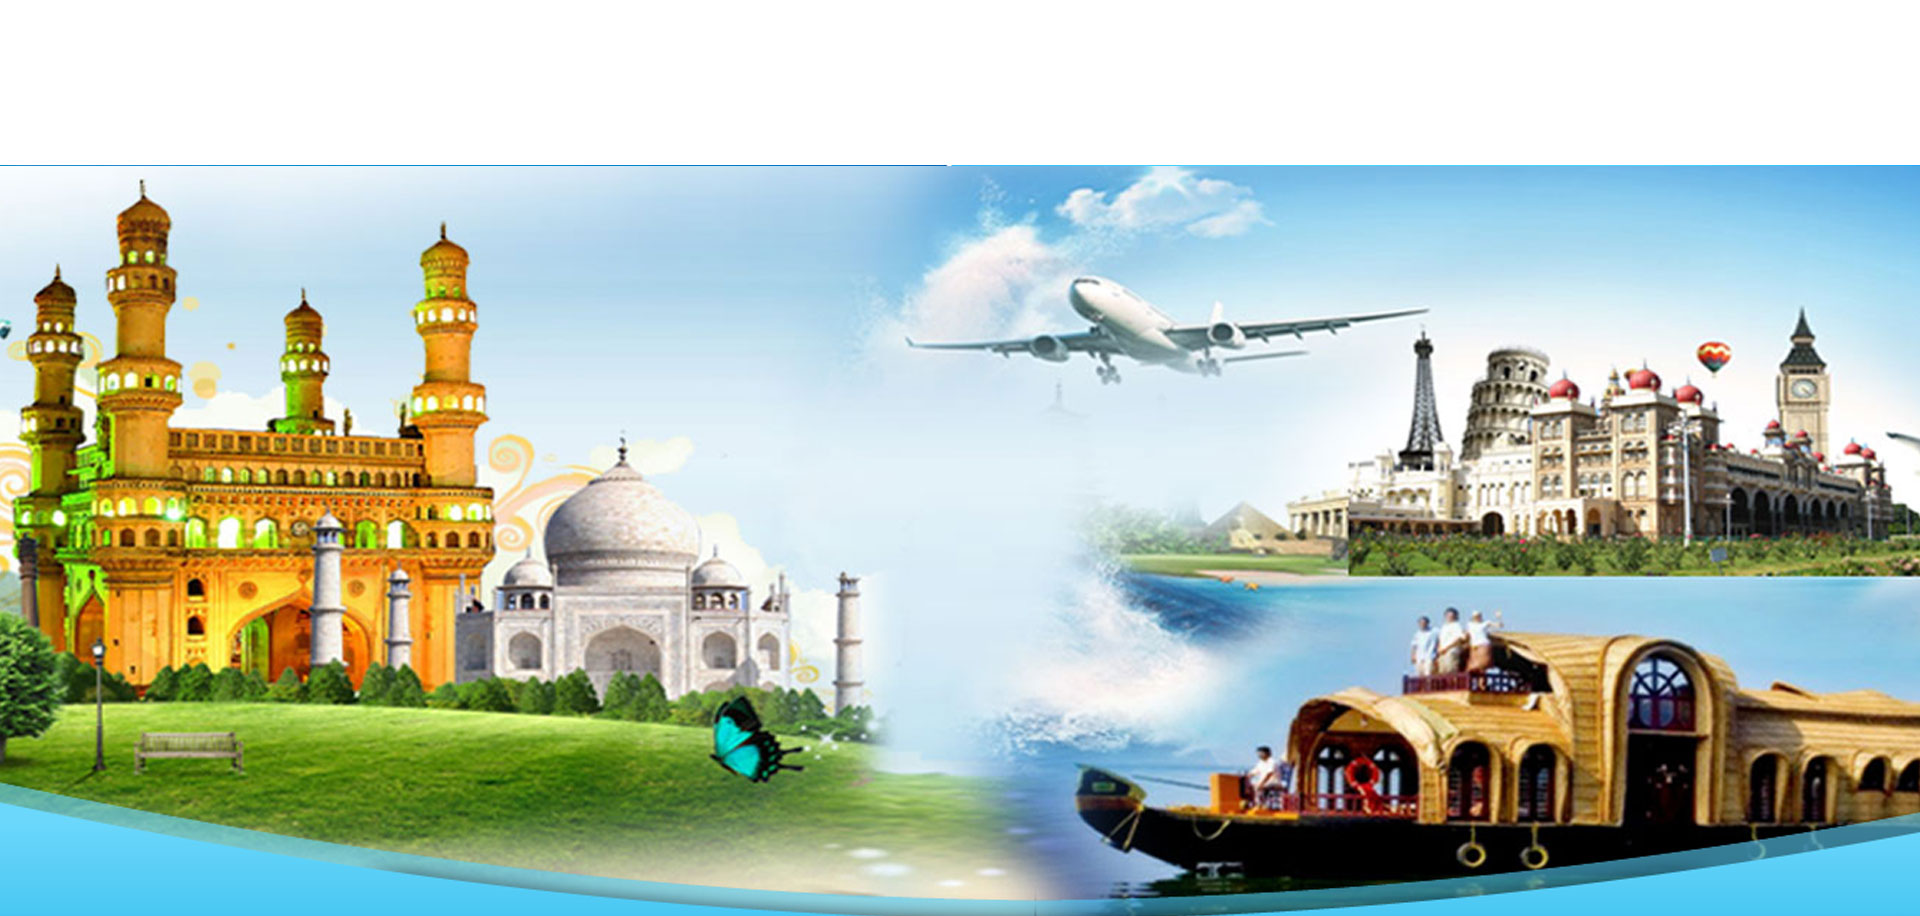 Tour Packages and hire car for rent at All India travel agency